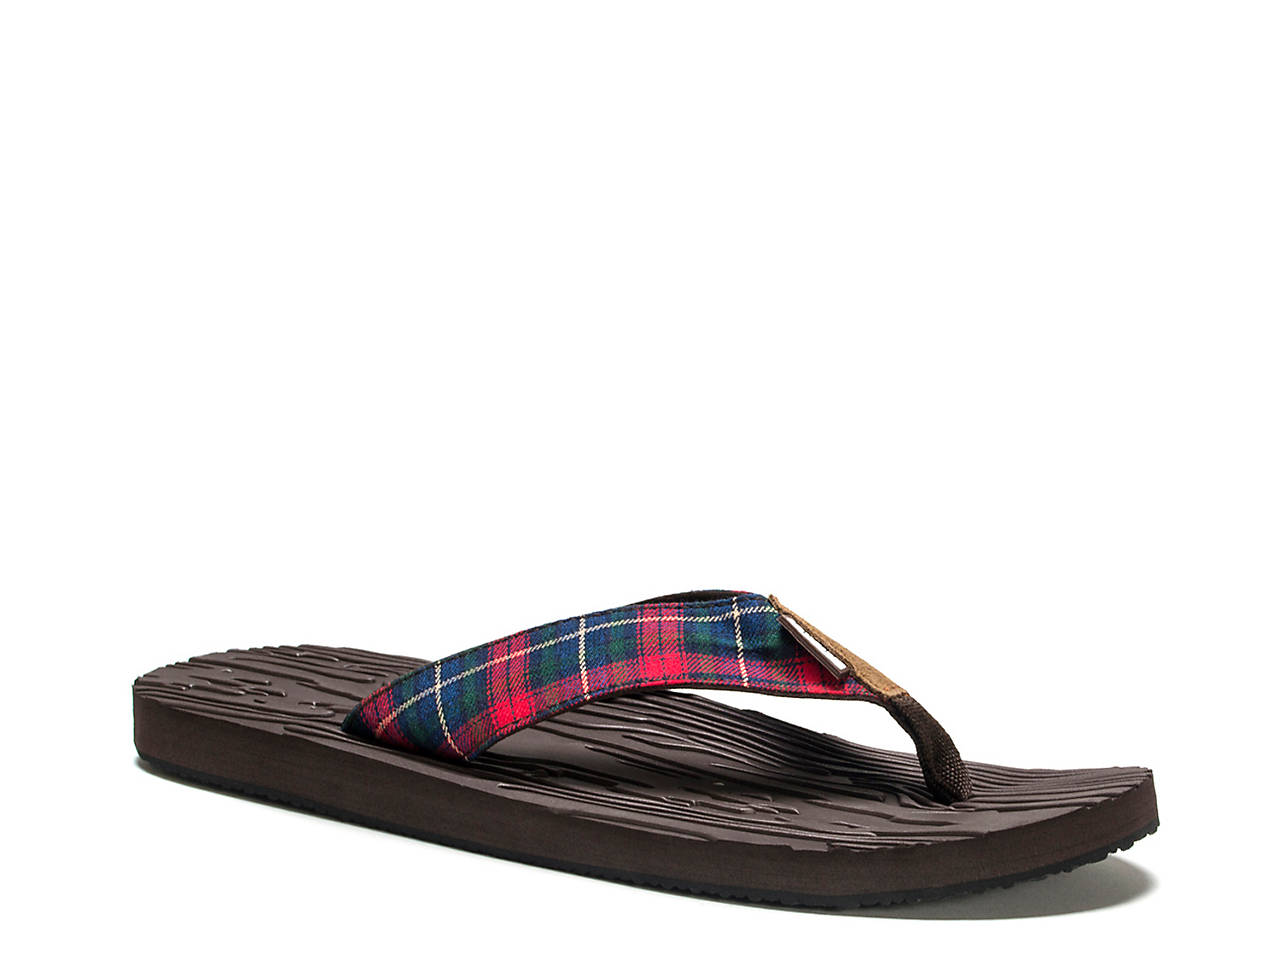 MUK LUKS Asher Flip Flop Discount Looking For Free Shipping Really Yks7Yk